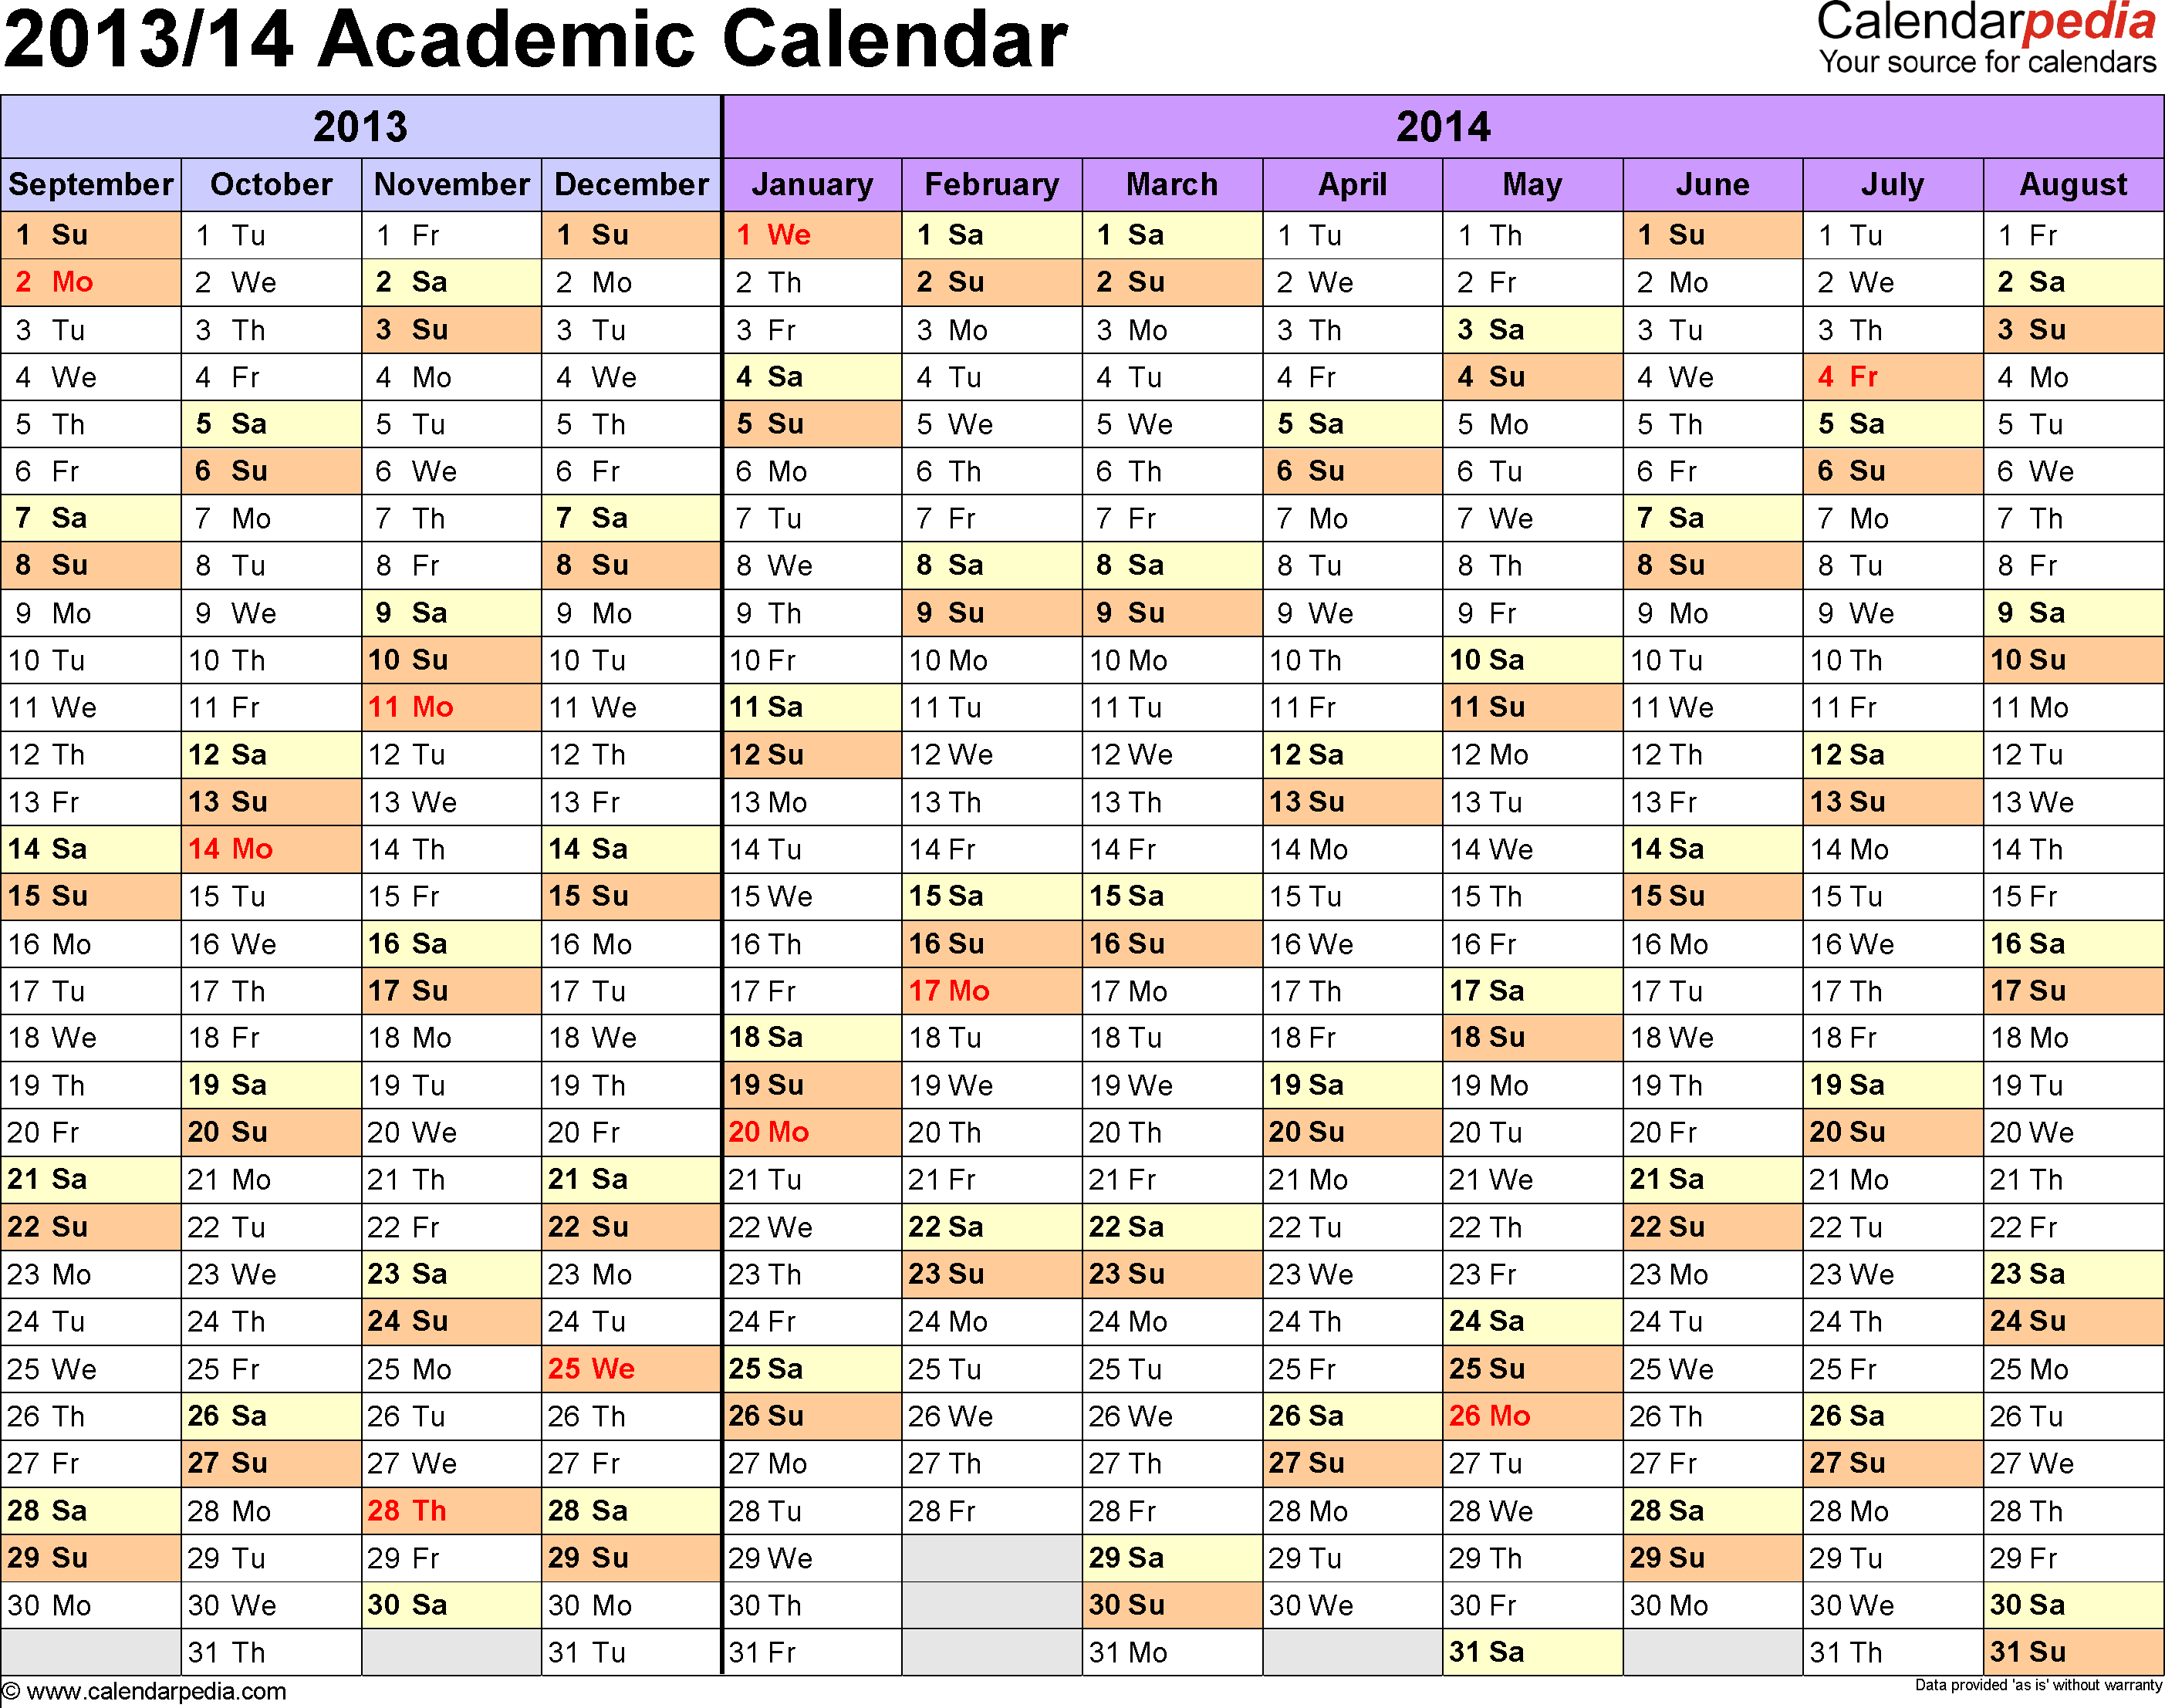 Template 1: Academic calendar 2013/14 for Word, landscape orientation, months horizontally, 1 page